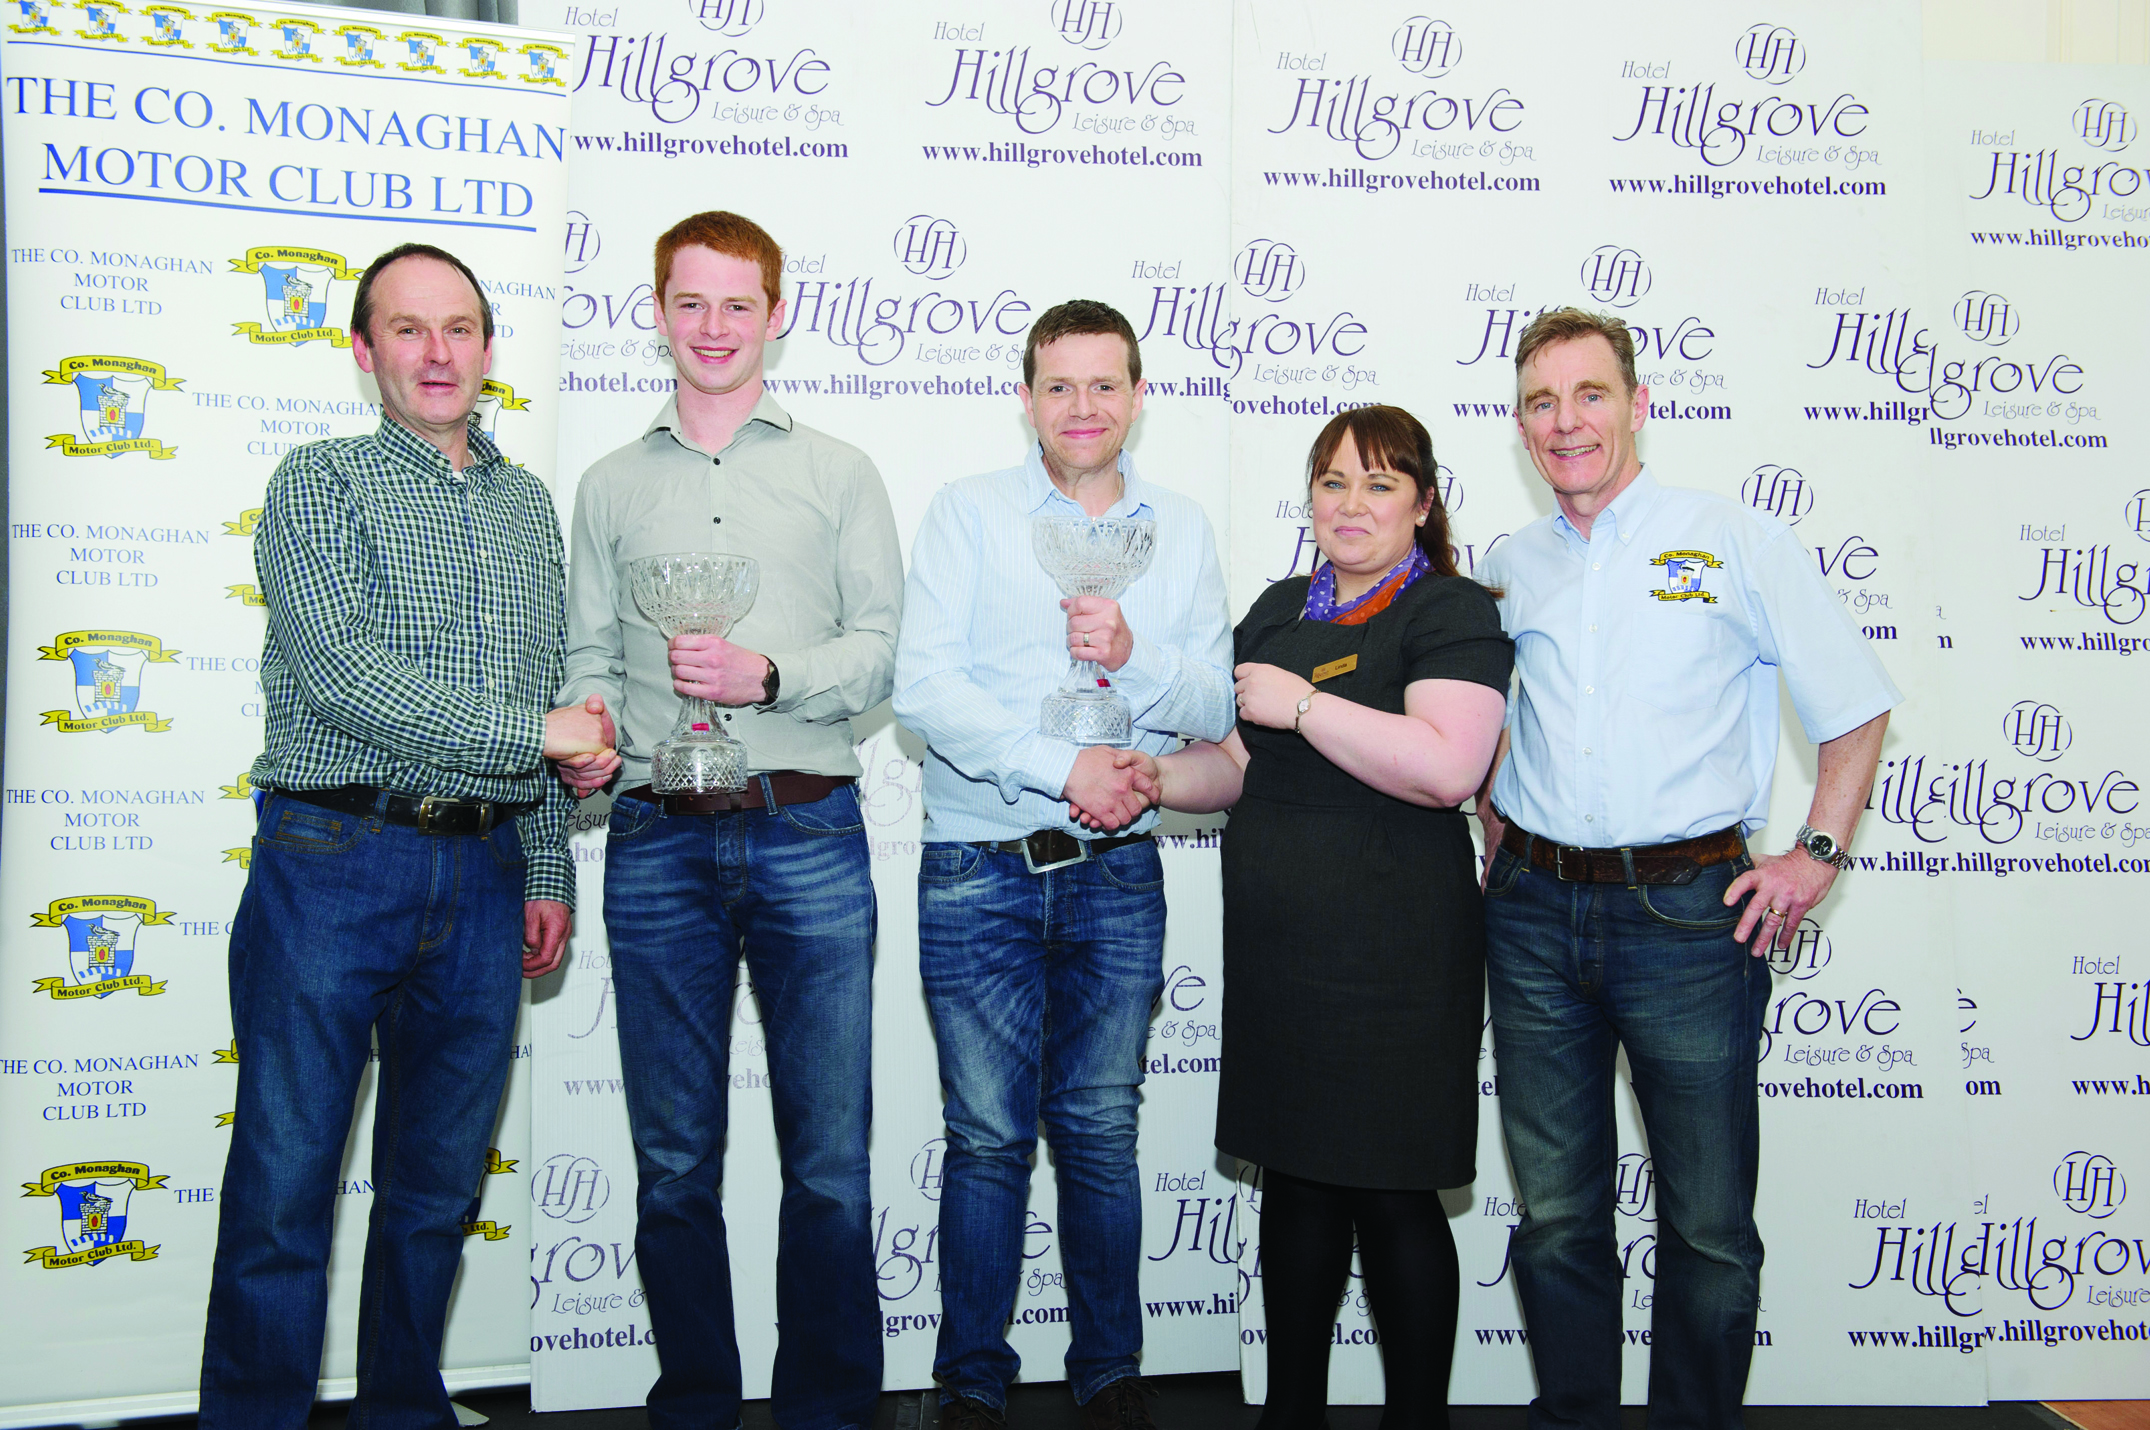 Overall winners of The Hillgrove Hotel Monaghan Stages Rally, Josh Moffett and Jason McKenna, being presented with their awards at the presentation function in The Hillgrove Hotel. Included are (L-R) Brendan Flynn, Clerk of Course, Josh Moffett, Jason McKenna, Linda Scott, The Hillgrove Hotel and Paul Hughes, chairman, Monaghan Motor Club. ©Rory Geary/The Northern Standard